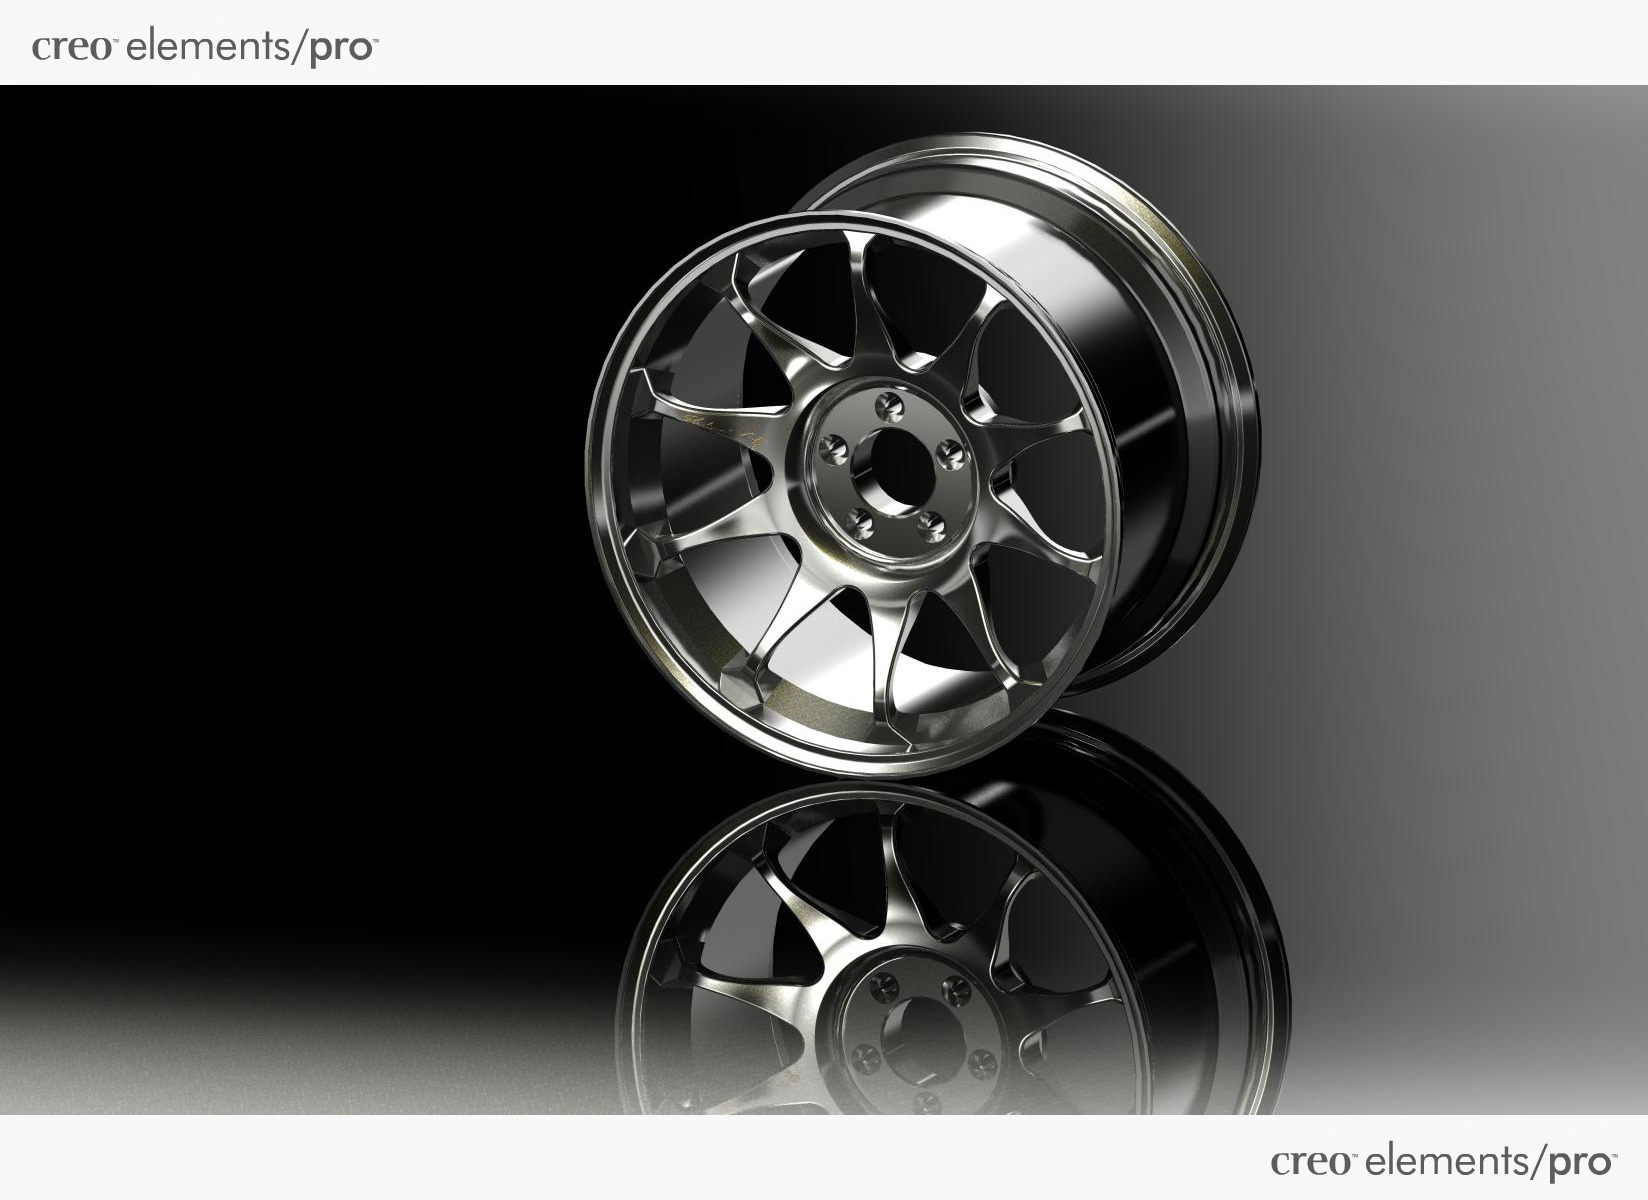 wallpaper_rims_1600x1200.jpg